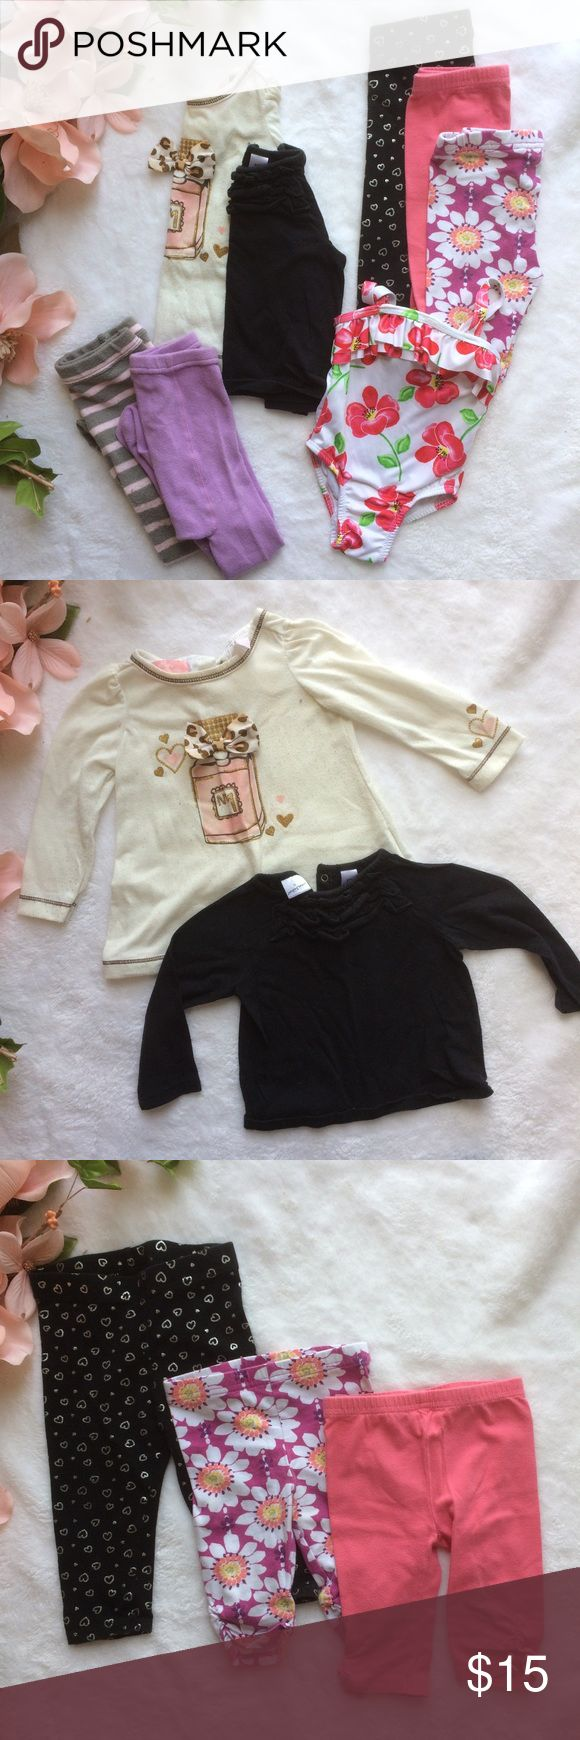 12 month girl bundle 2 long sleeve tee shirts: one white with perfume bottle and bow, and one plain black with ruffles. One pair of black leggings with silver hearts. 2 Capri leggings: one purple floral and one pink. White floral one piece swimsuit and 2 pair of tights. Pink and gray striped and purple with floral. ✖️Offers are ALWAYS welcomed, and if you see anything else you like feel free to make an offer on a bundle! ✖️ Jumping Bean Matching Sets